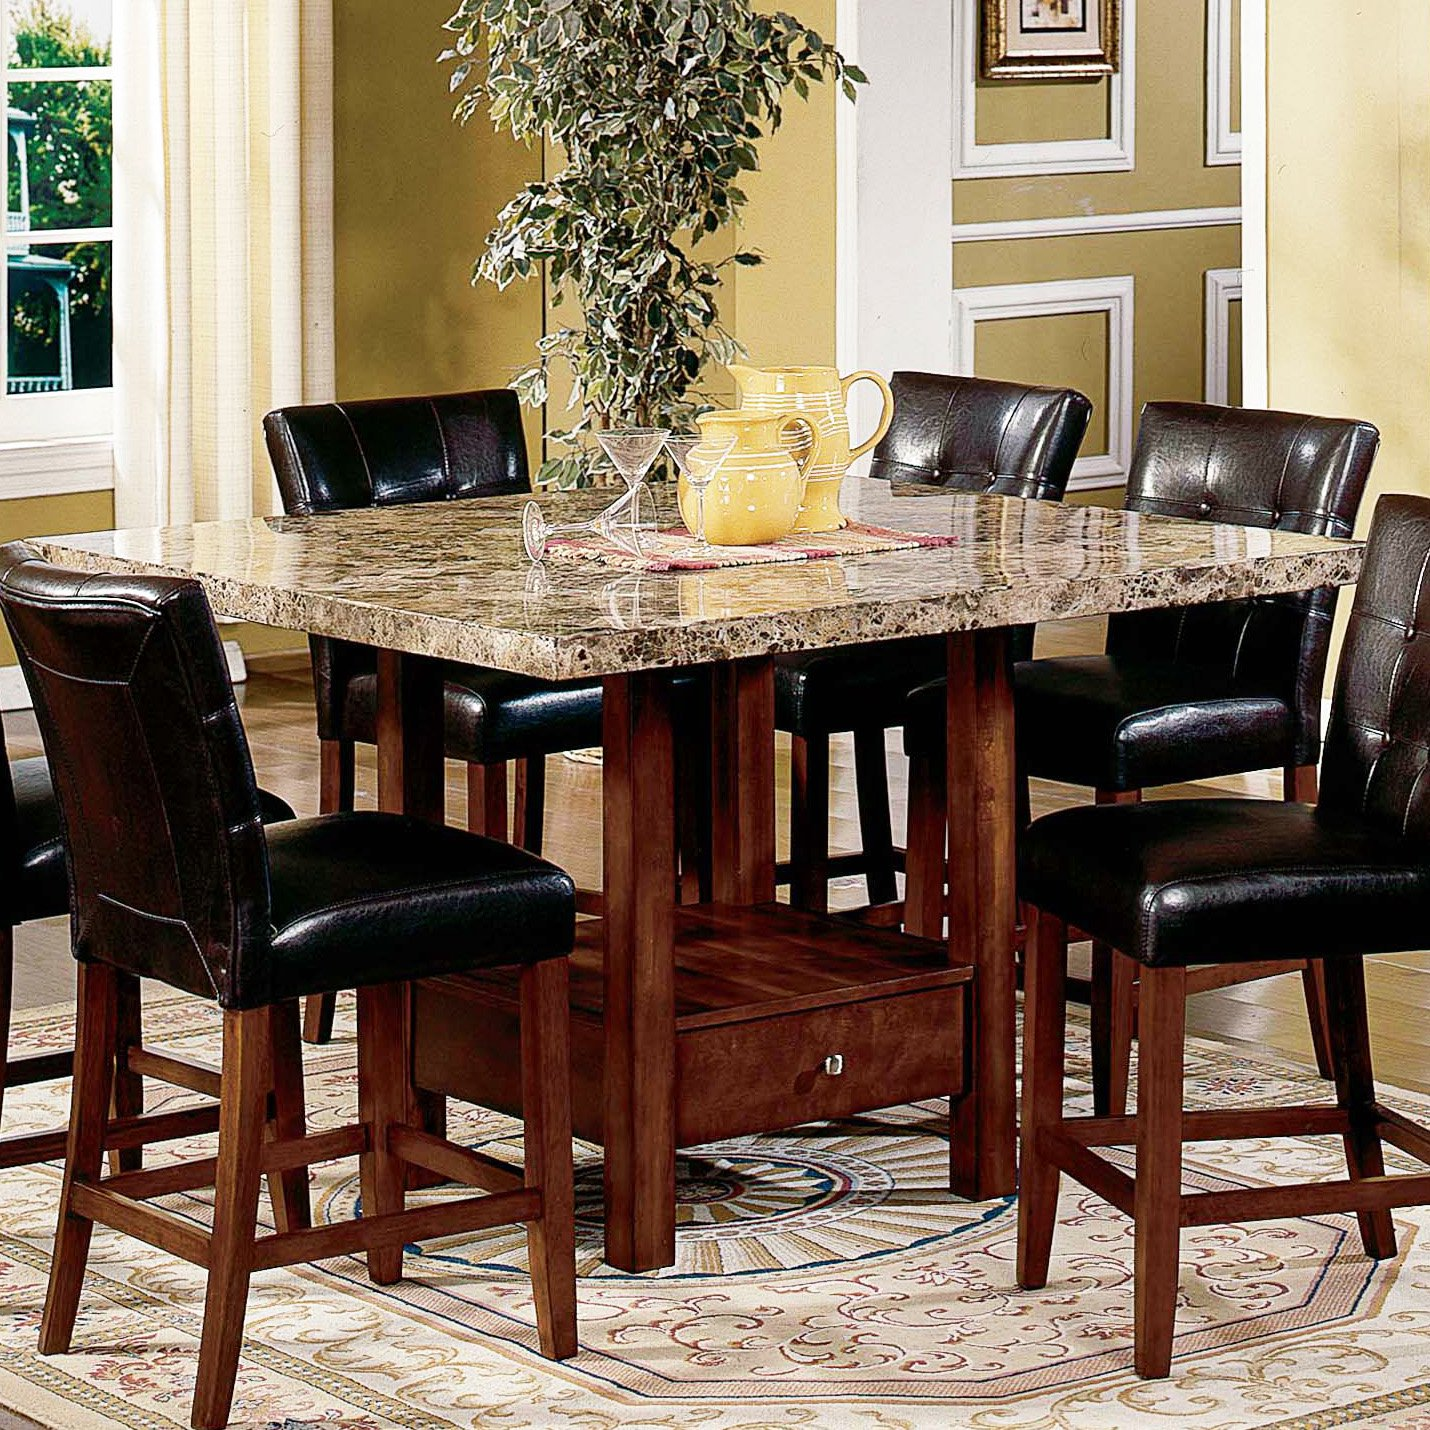 High top kitchen table sets homesfeed for Best kitchen set